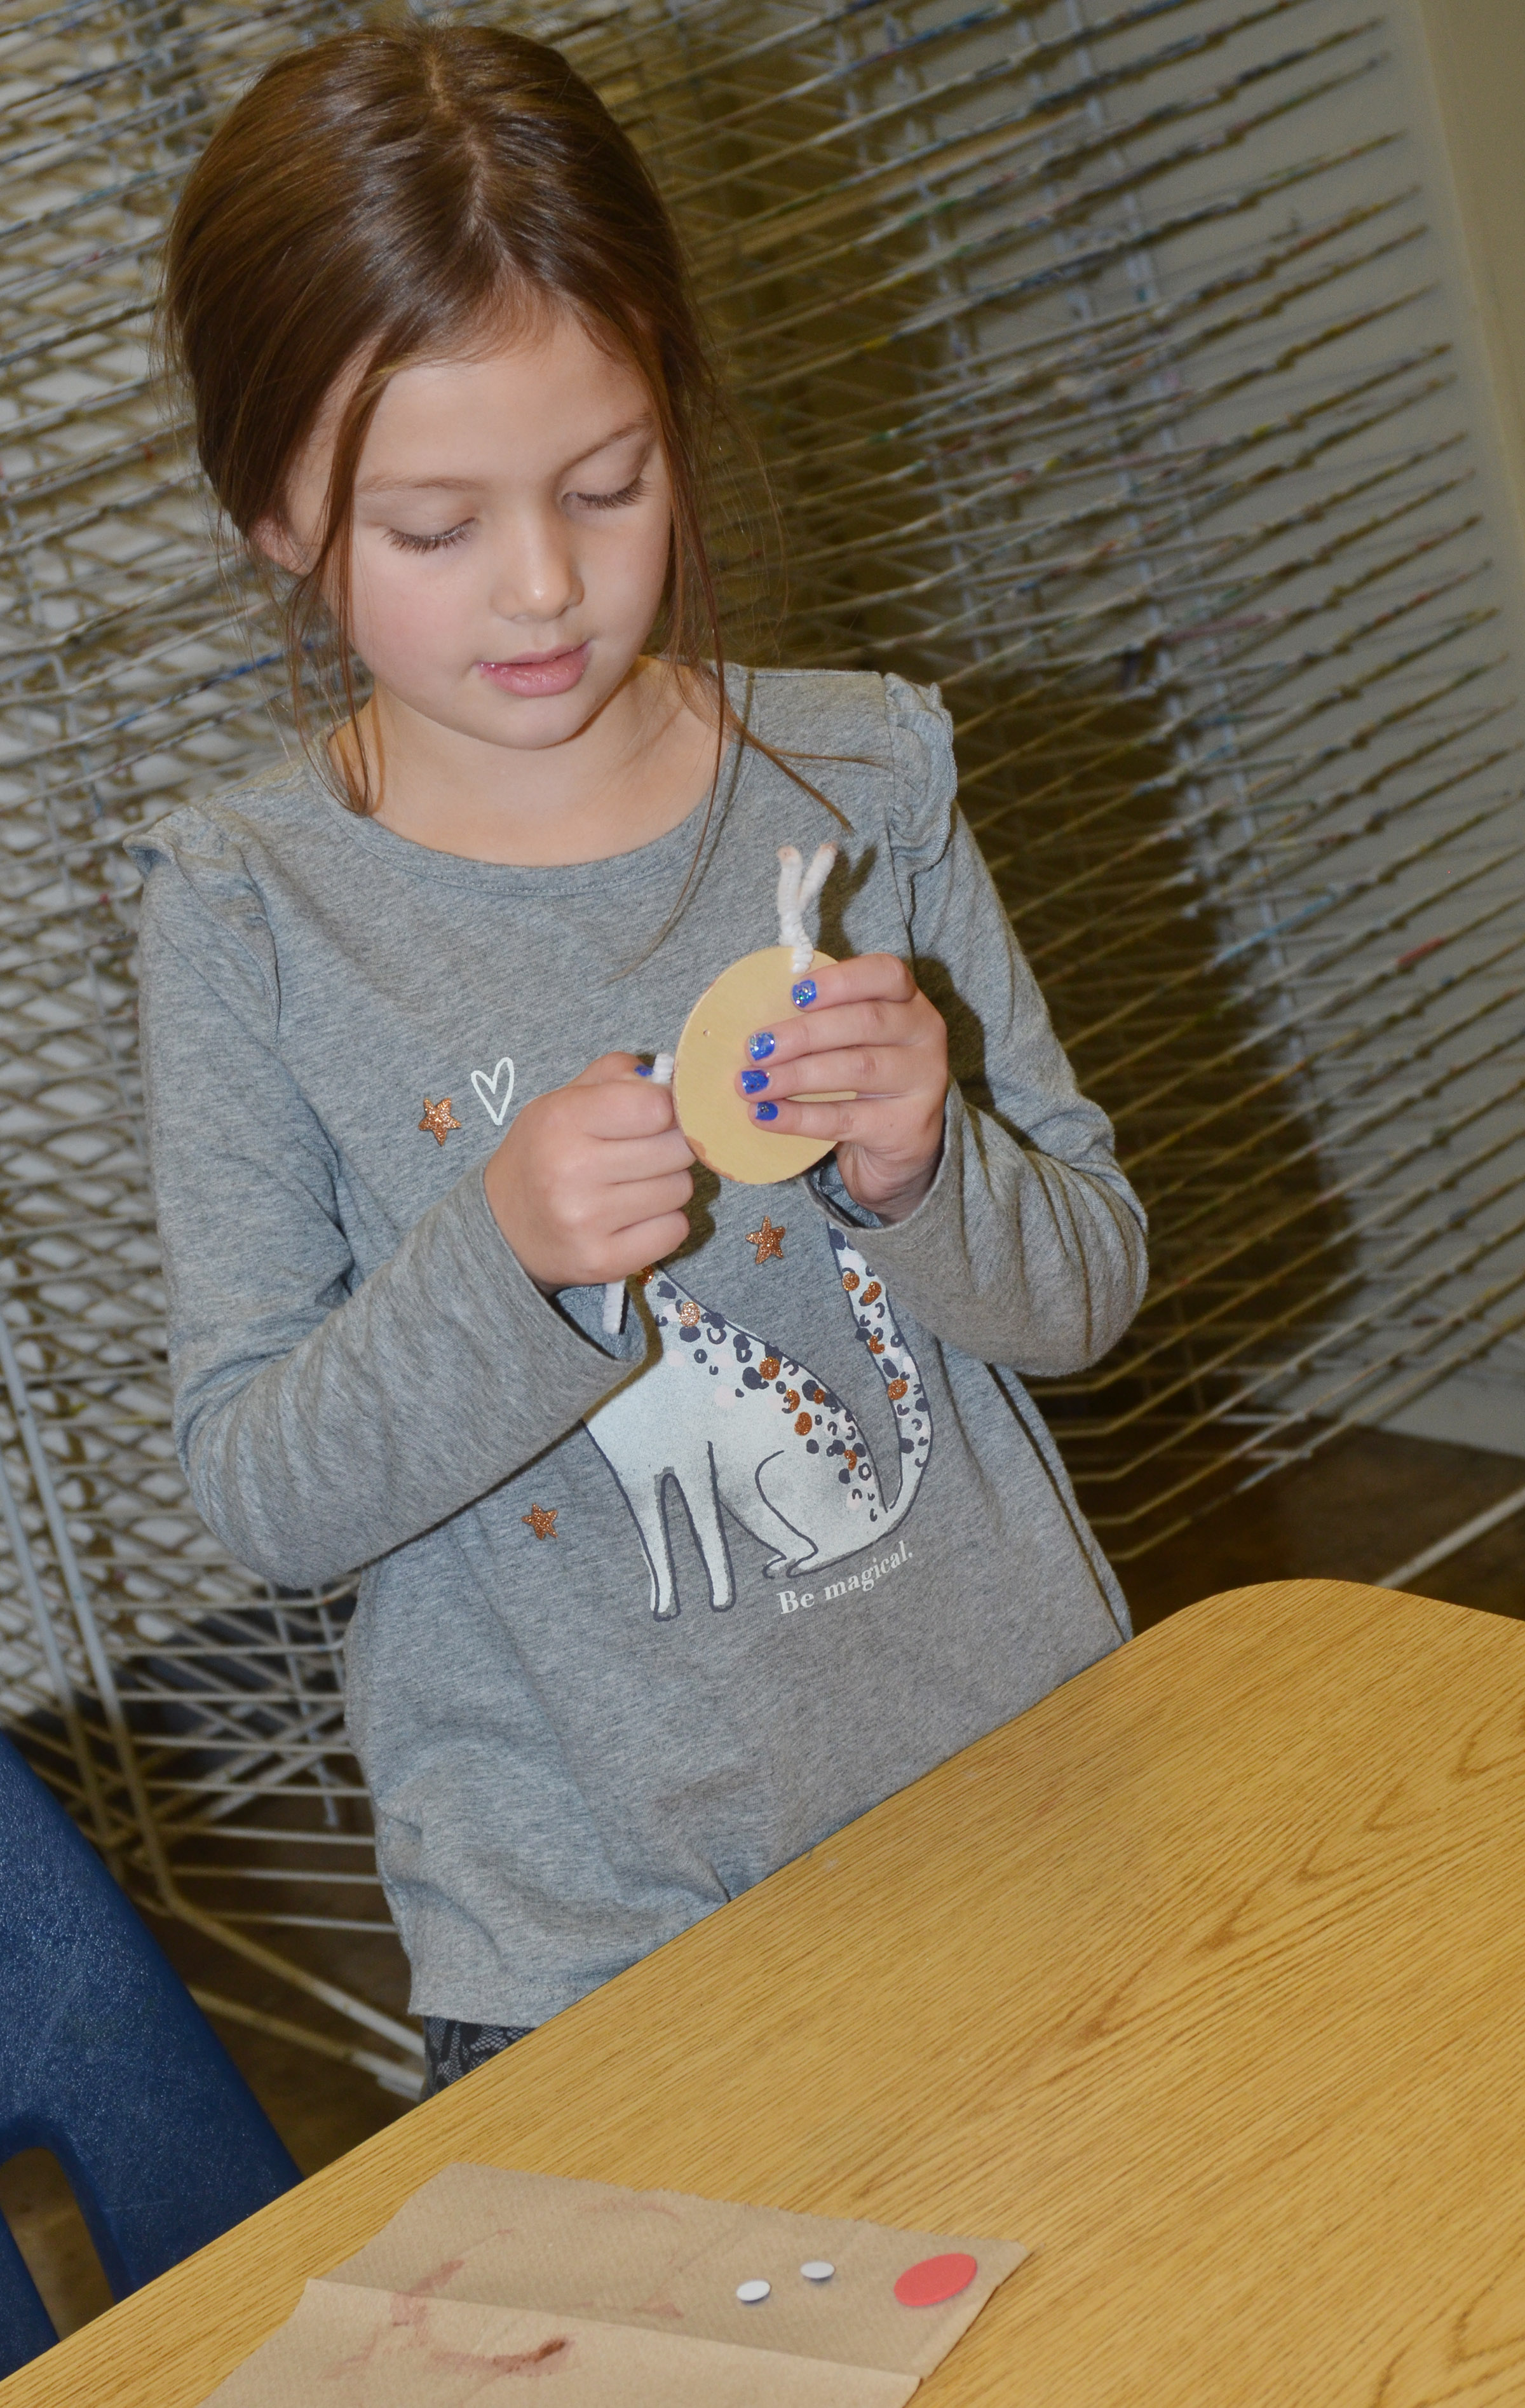 CES first-grader Delaney Staton adds antlers to her reindeer ornaments.